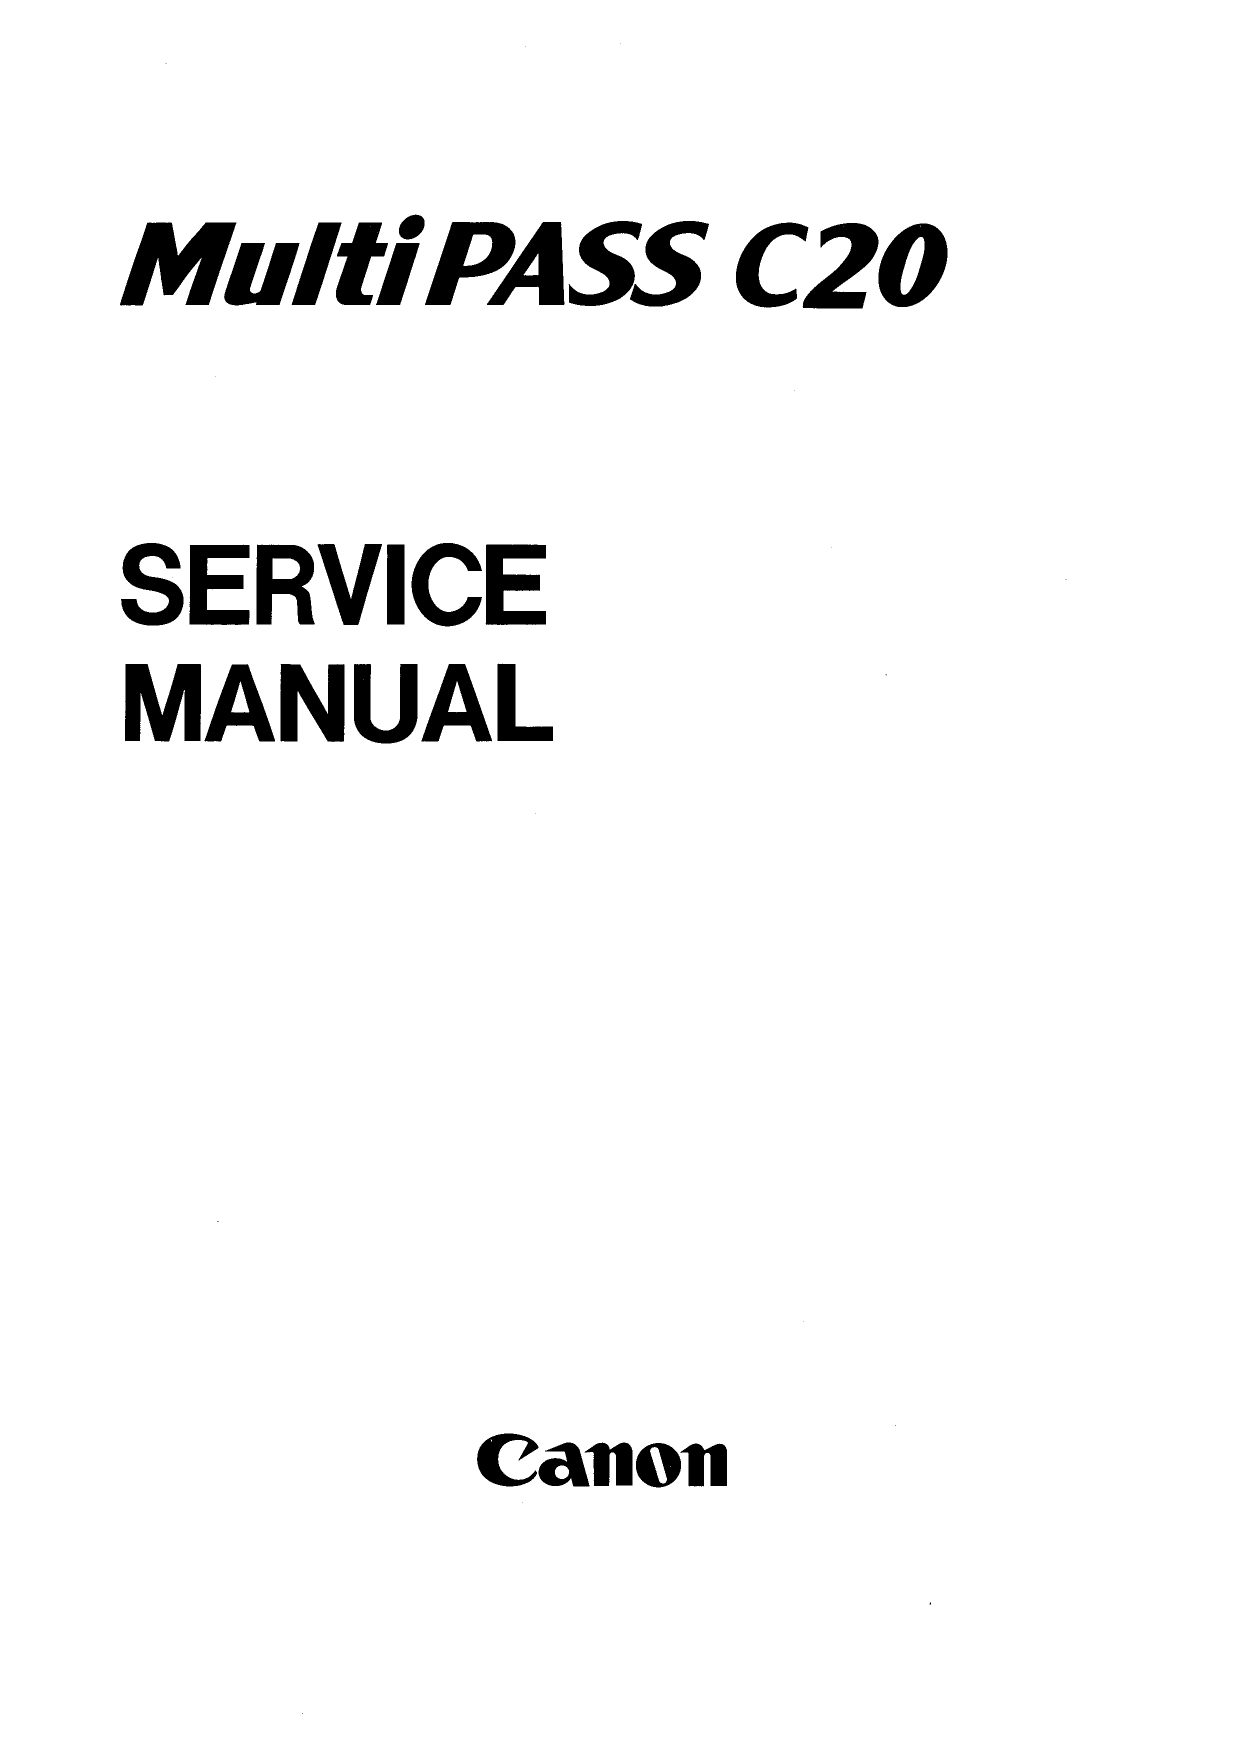 Canon MultiPASS MP-C20 Service Manual-1